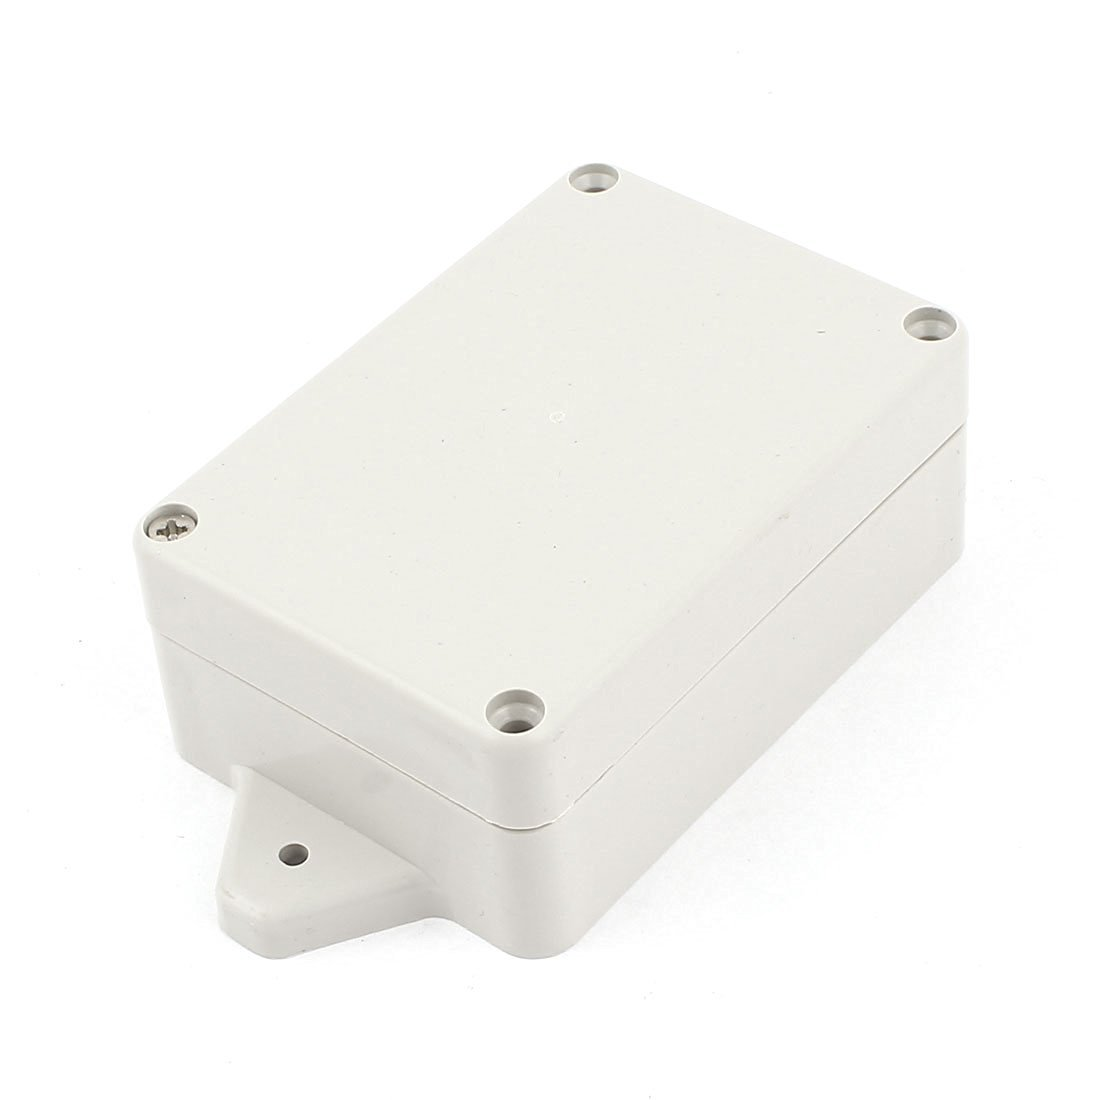 2 Packs 83mm x 58mm x 33mm Waterproof Plastic Sealed Electrical Junction Box  plastic waterproof sealed power protector junction box 190mmx180mmx70mm